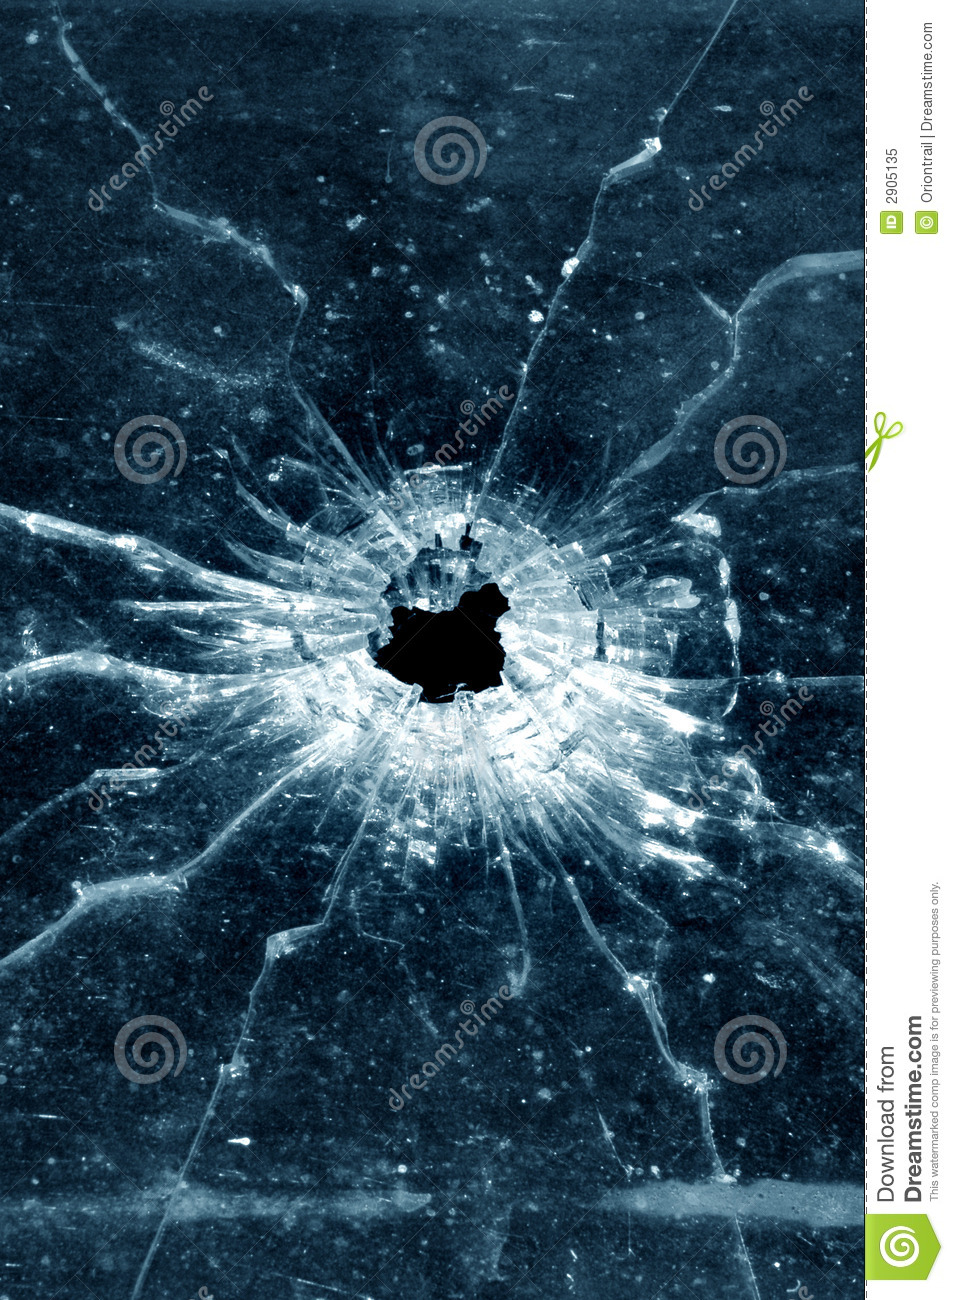 Bullet hole in window